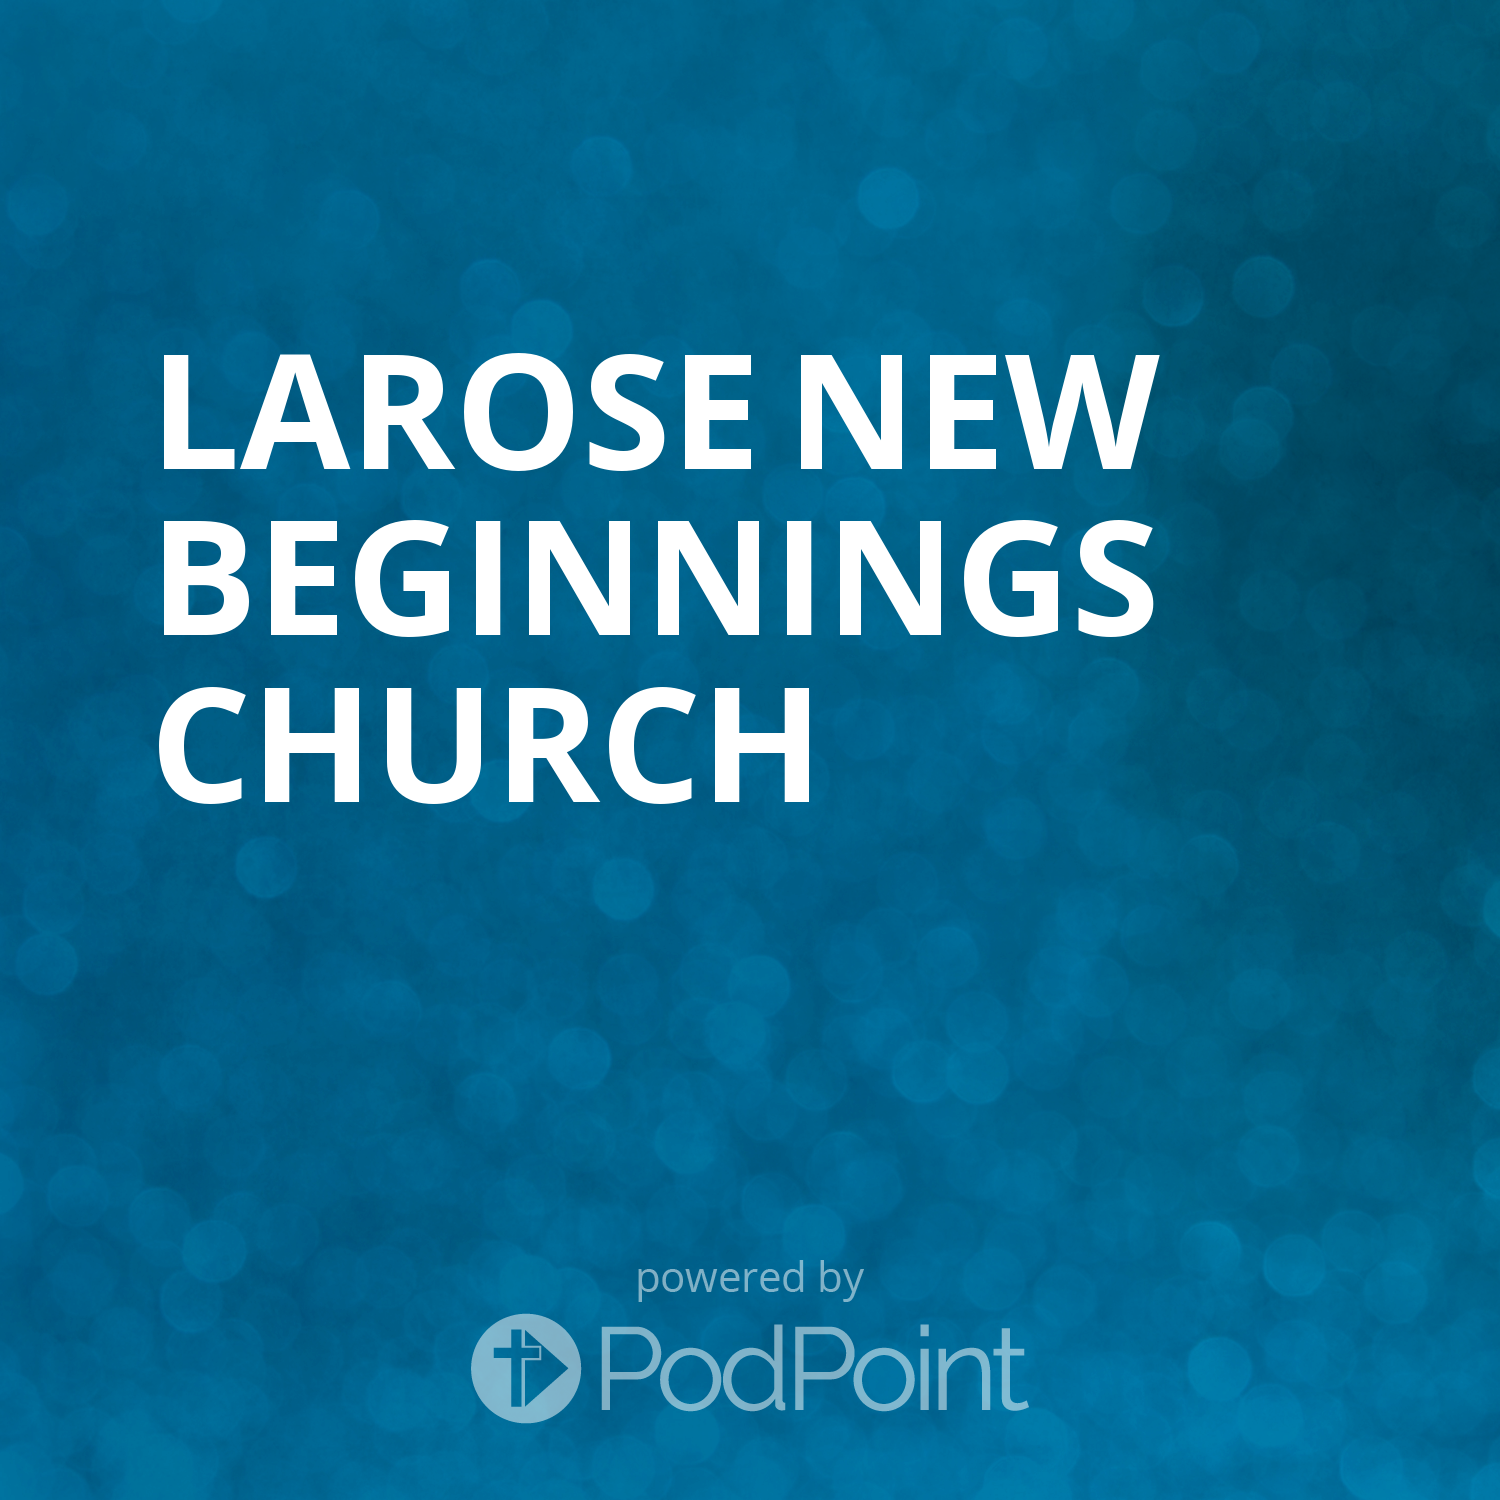 Larose New Beginnings Church